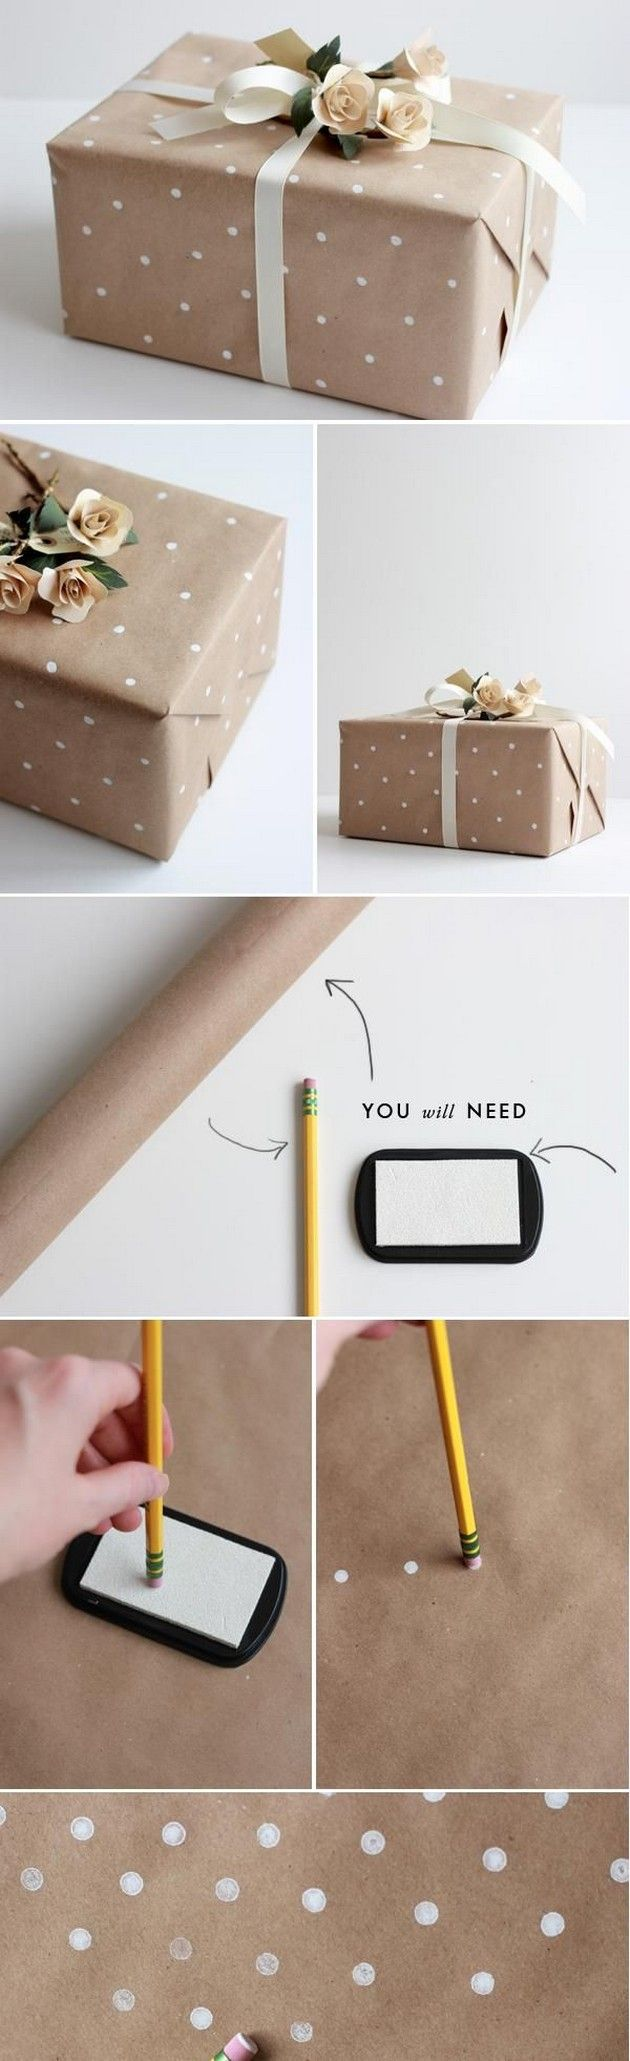 DIY-Gift-wrap-ideas-06.jpg (630×2061)